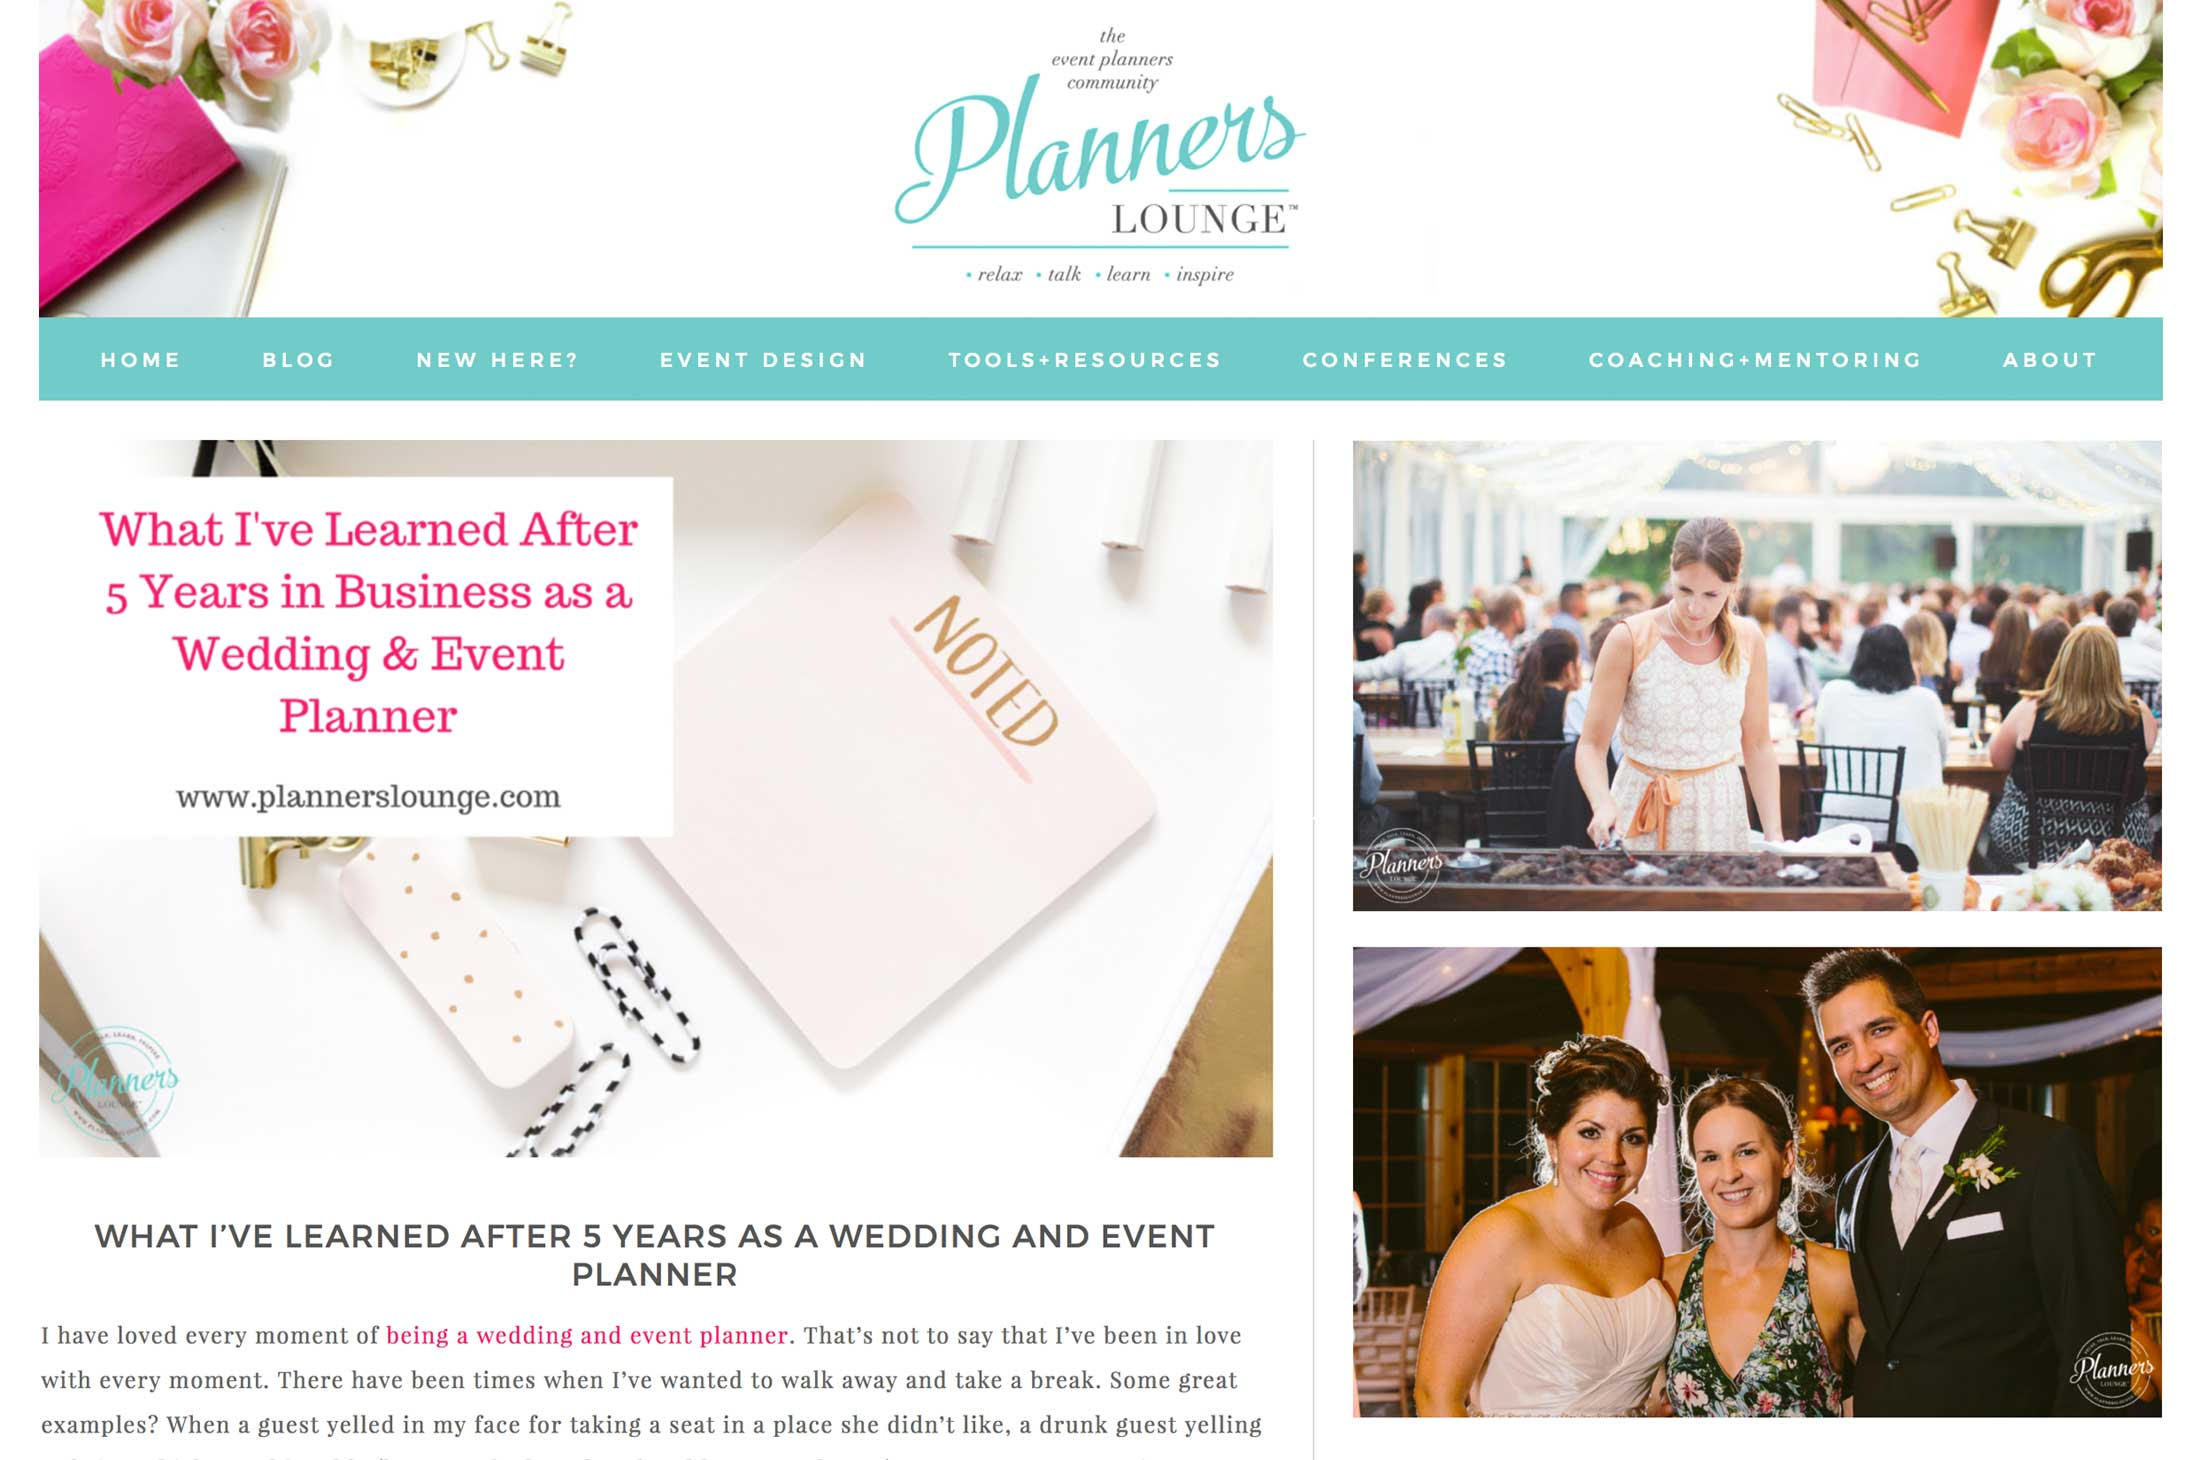 Winnipeg Wedding Planner and Inspiration Feature: What I've Learned After 5 Years as a Wedding Planner